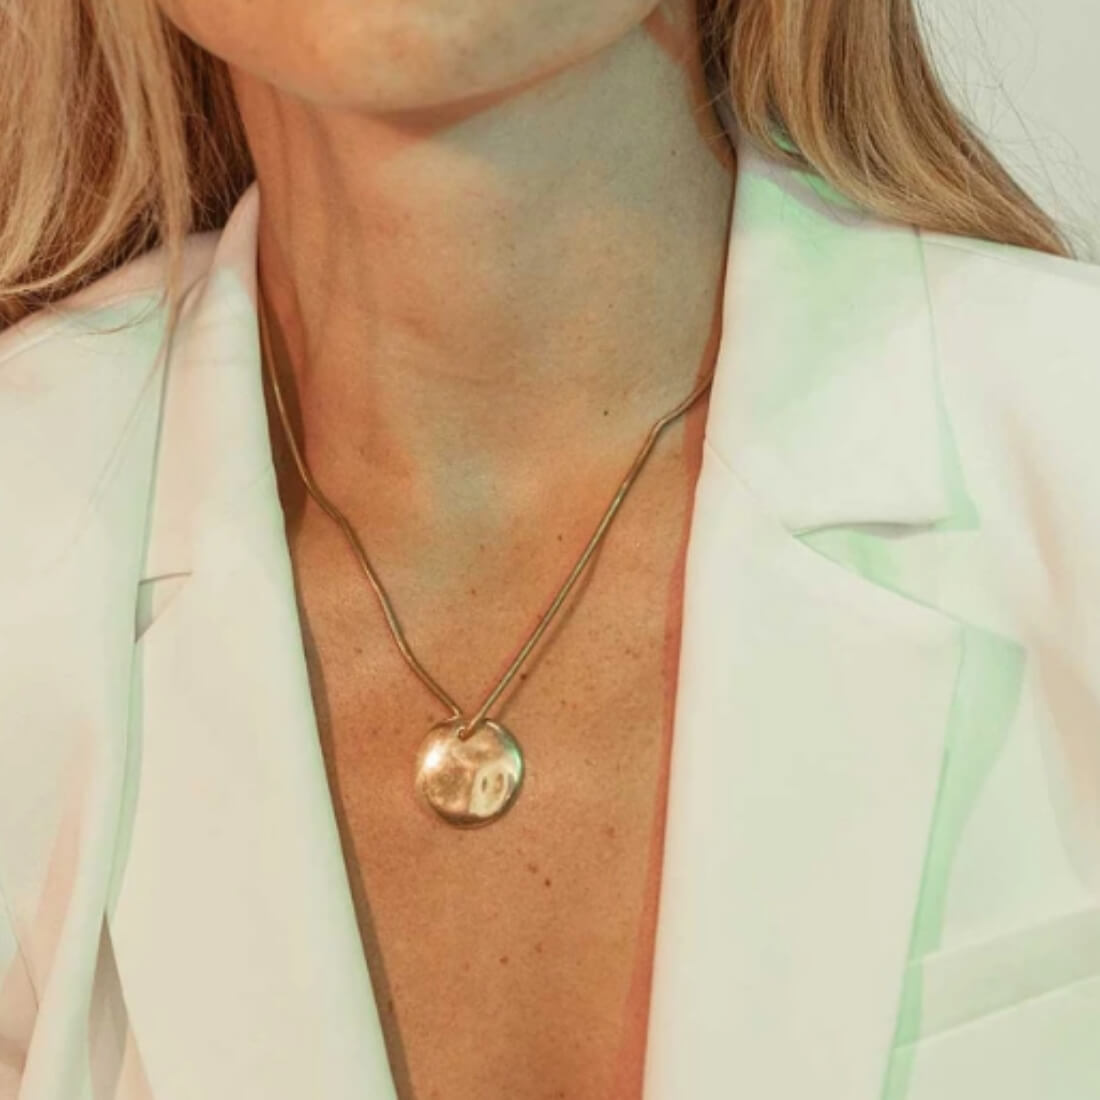 Styled, Ripple Disc Pendant Necklace